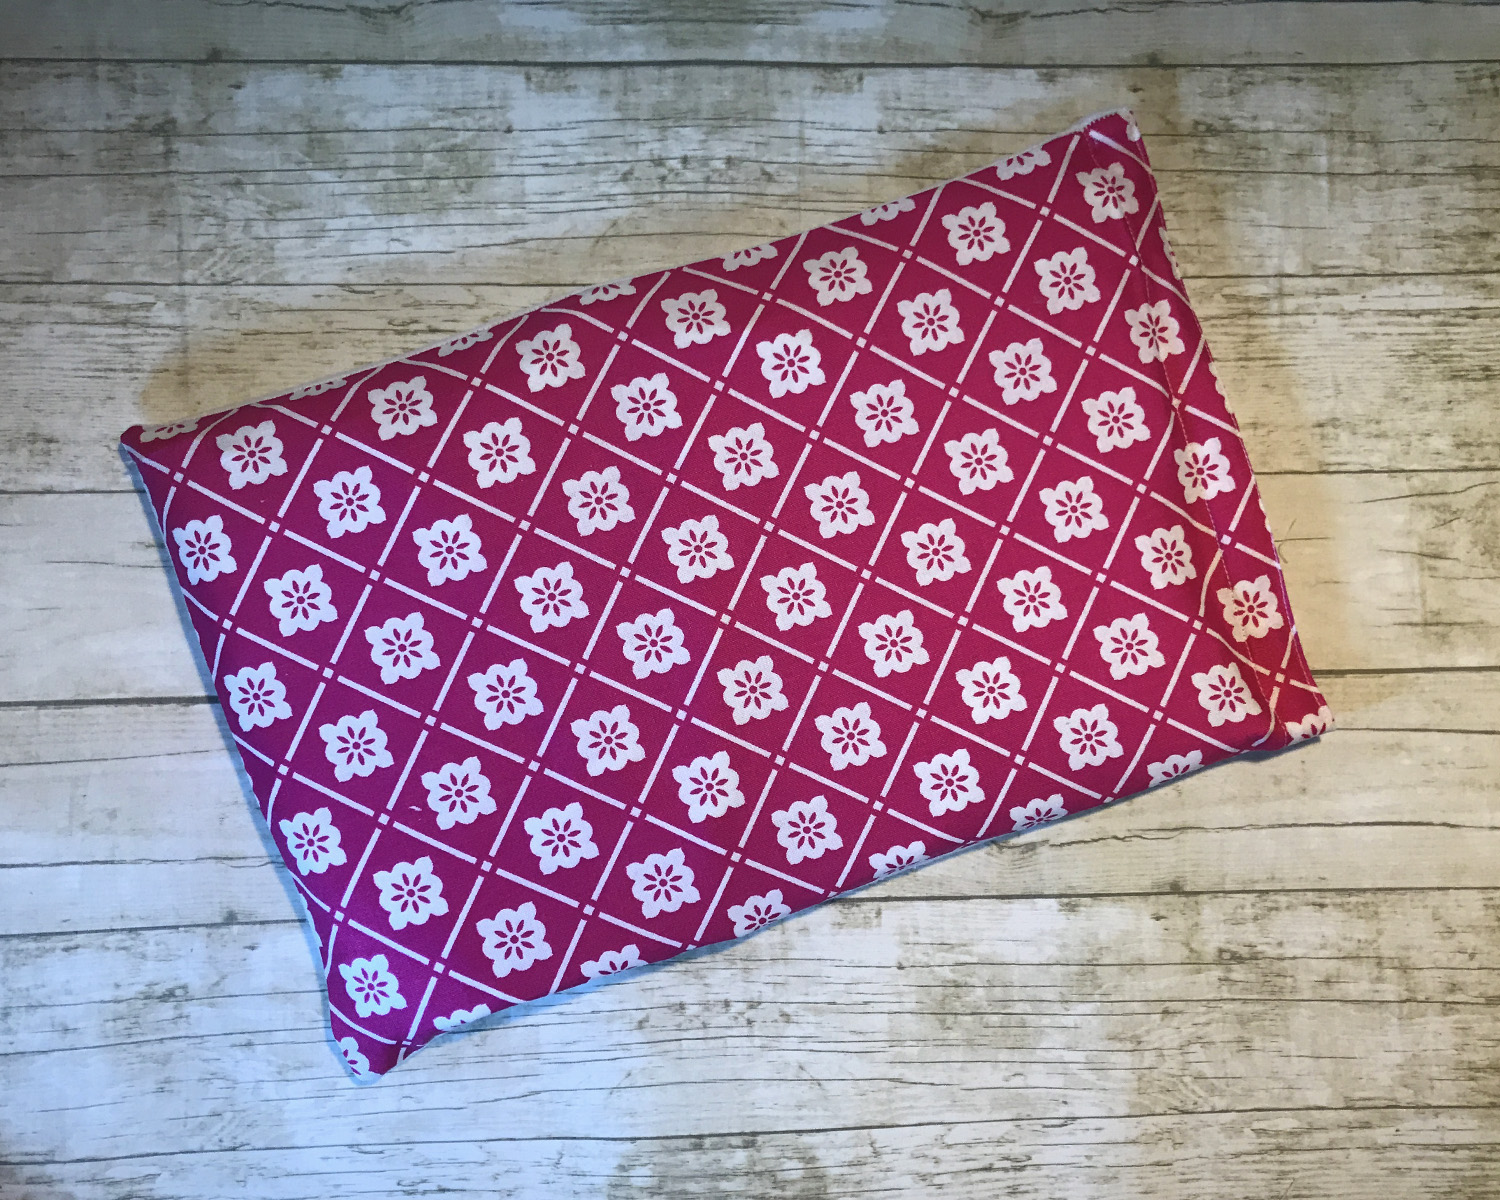 Ice Pack Cover - Magenta Floral Grid - 8x12